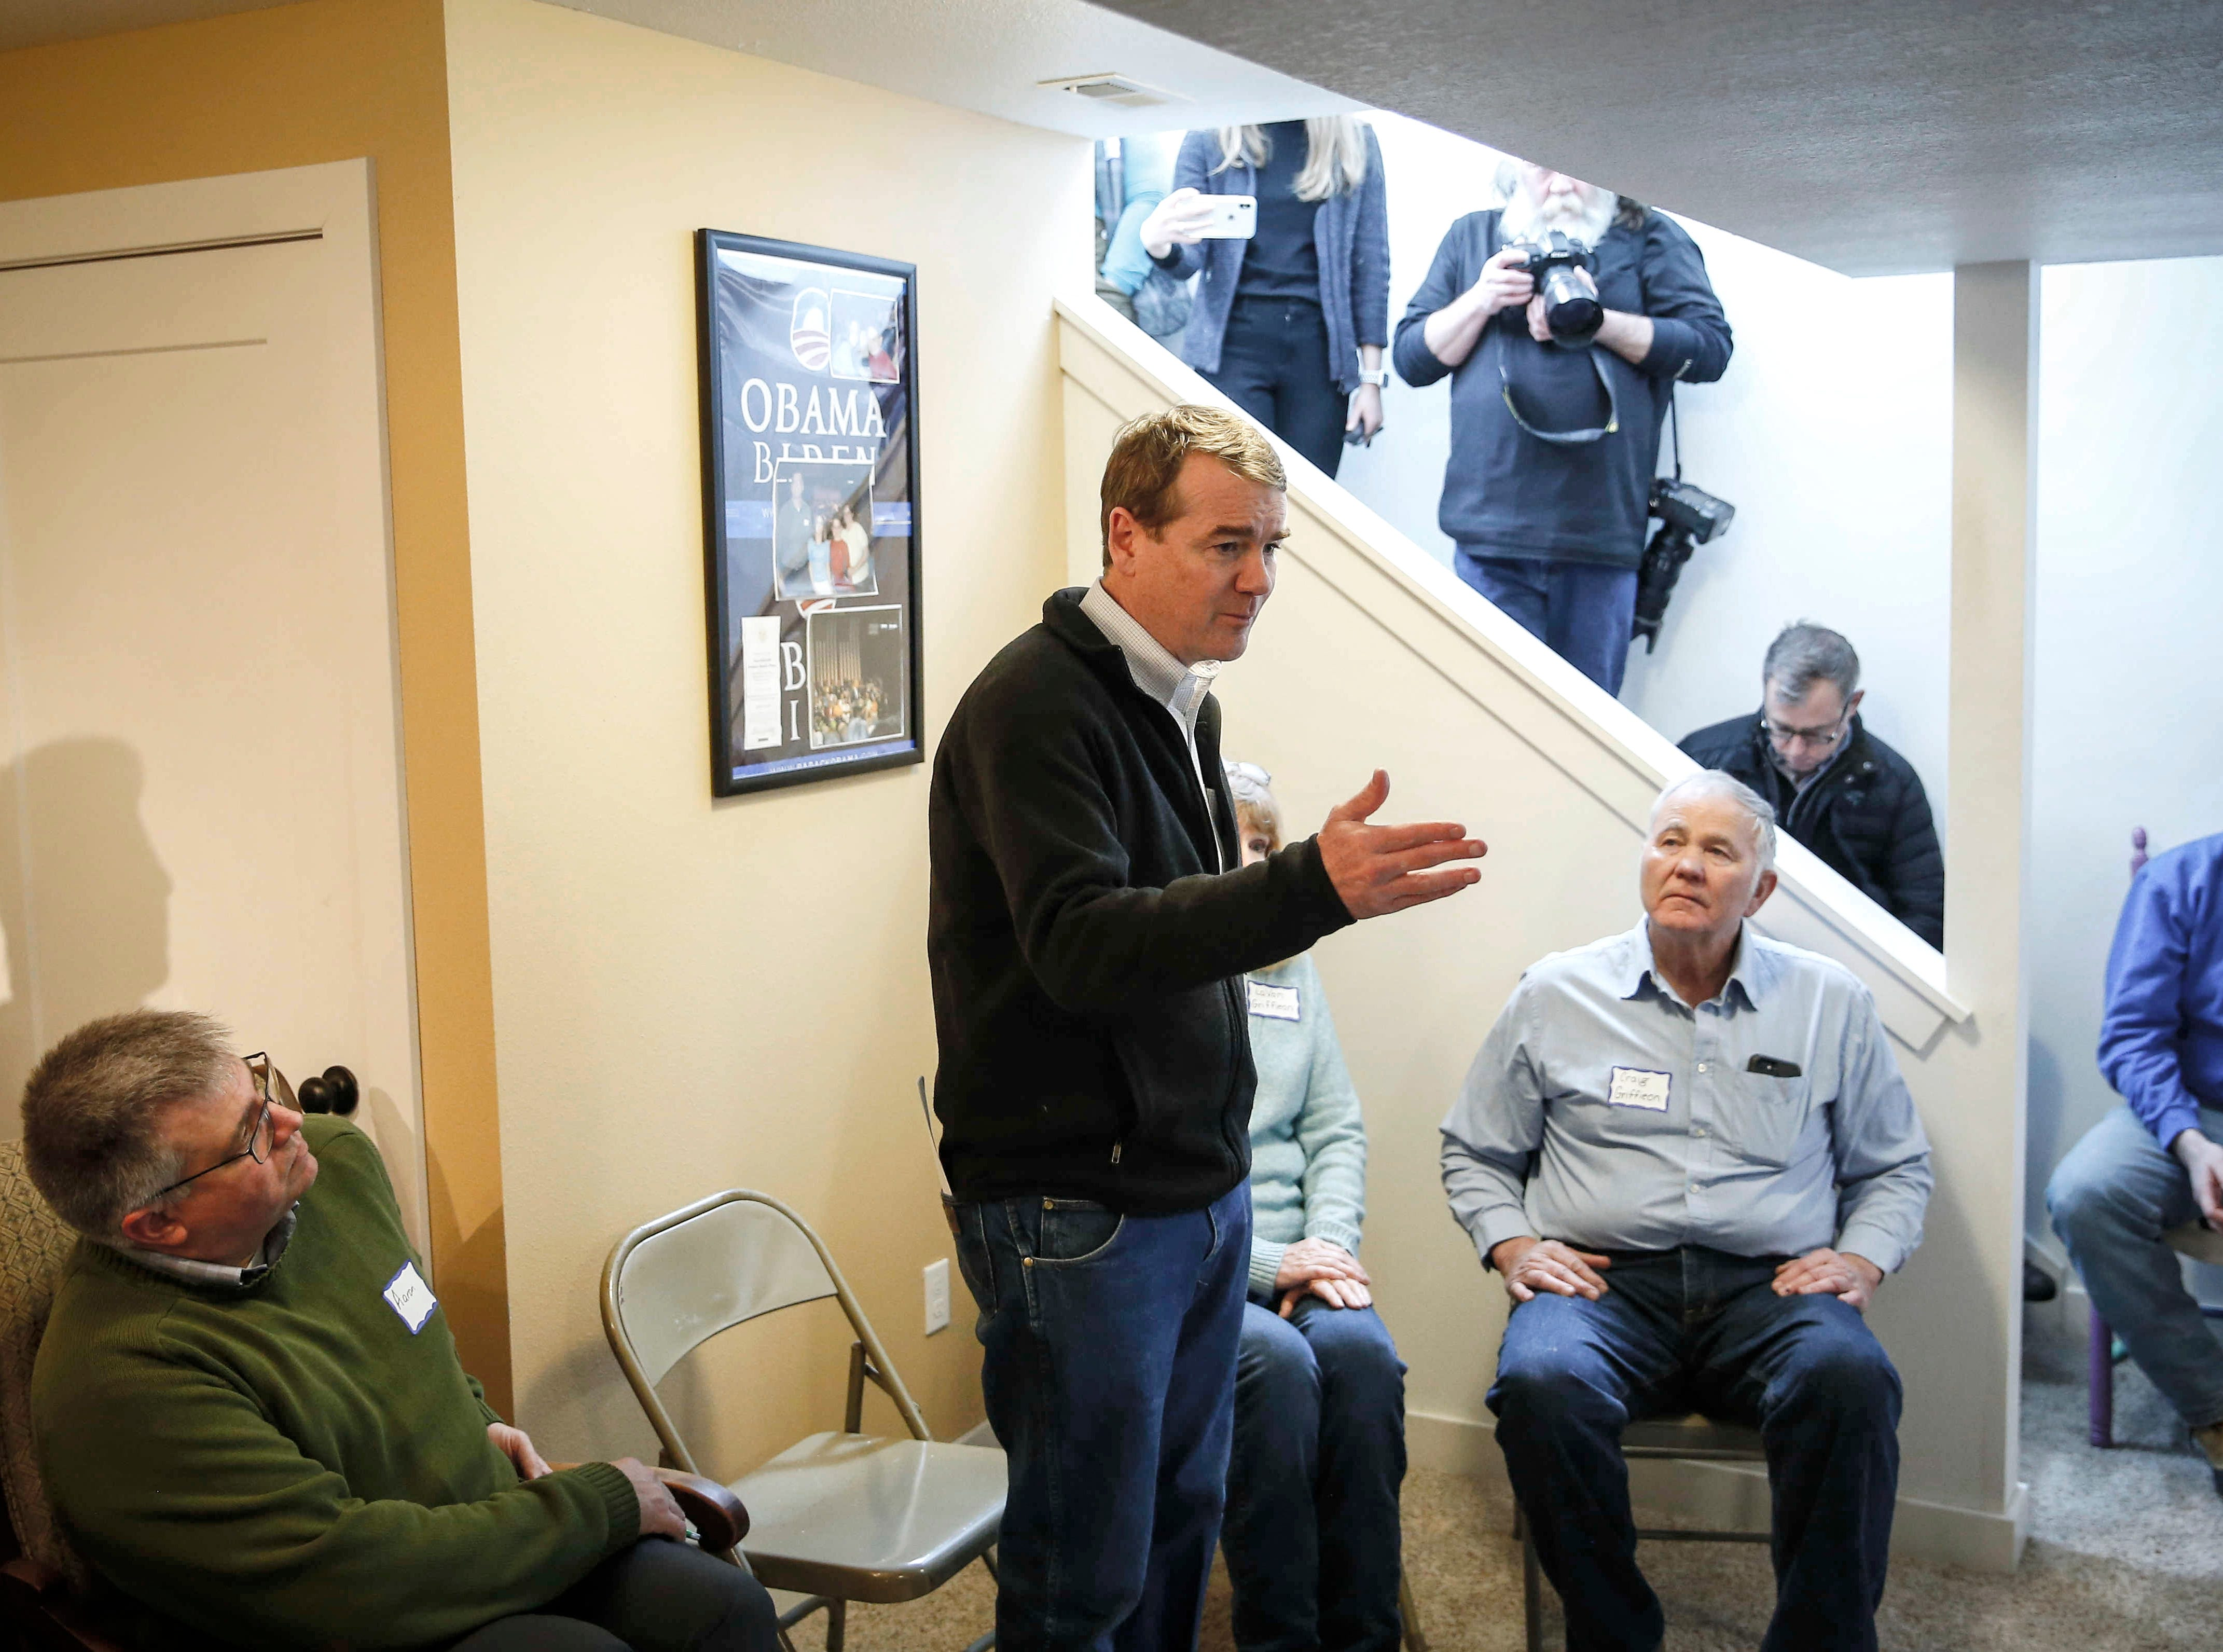 United States Sen. Michael Bennet from Colorado talks about subjects near and dear to the hearts of rural Iowans on Saturday, Feb. 23, 2019, at the Lehman farm in rural Polk City.